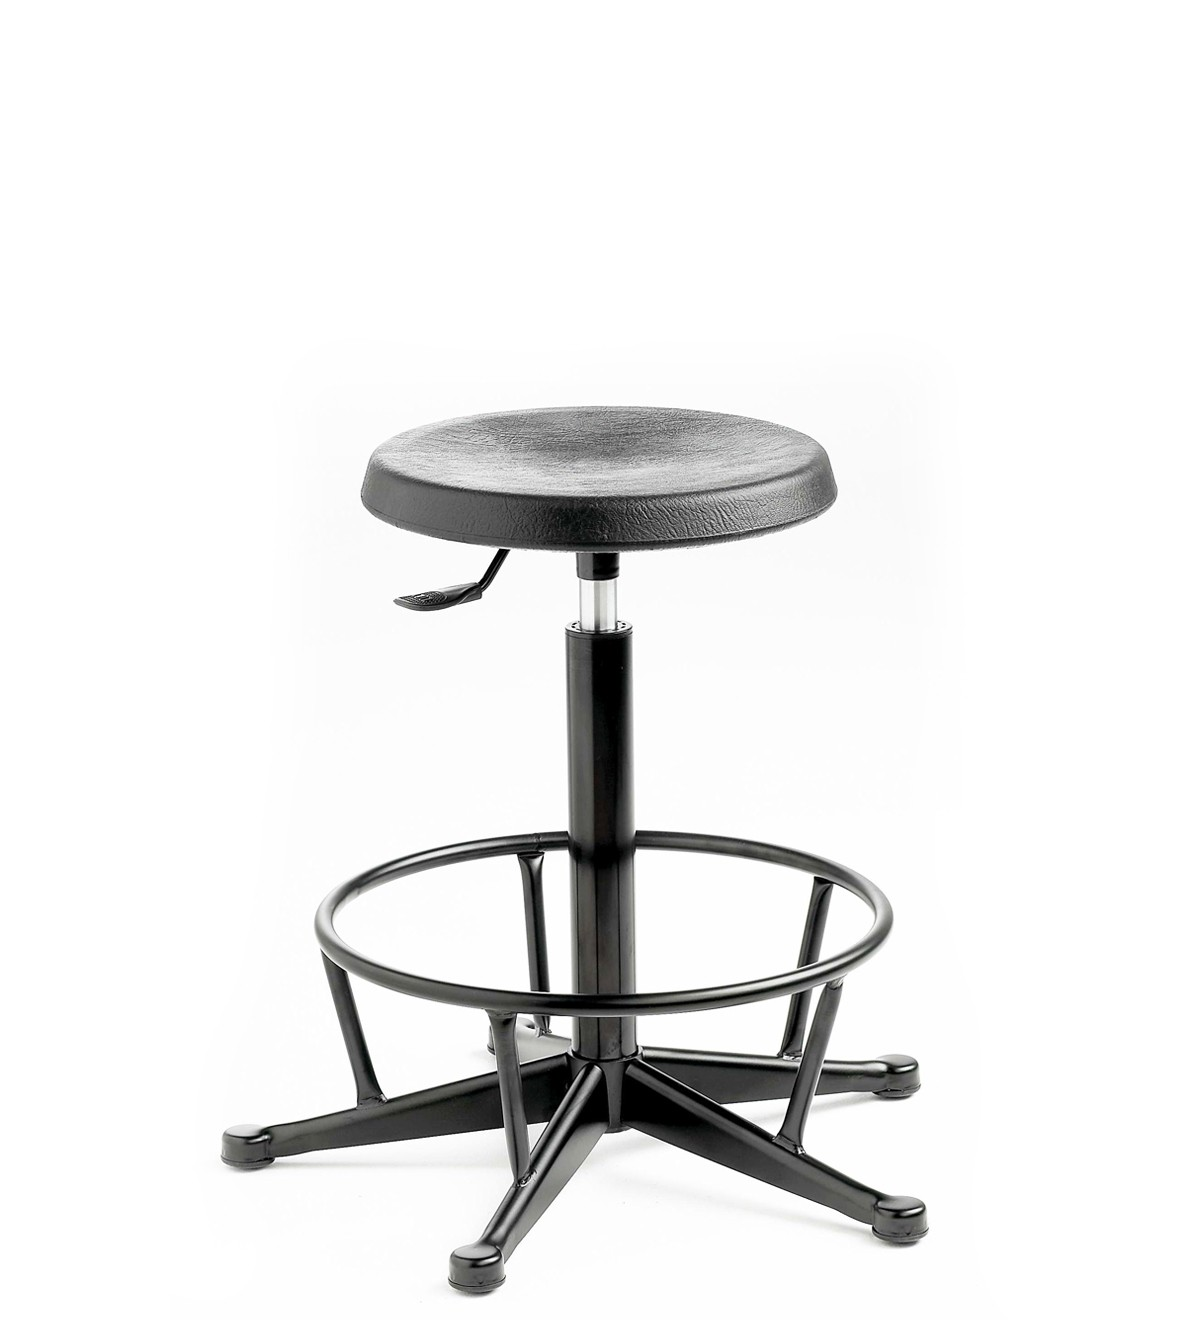 C170 - Industrial Cushioned Polyurethane high stool with feet (steel foot ring) 550-800mm height adjustment